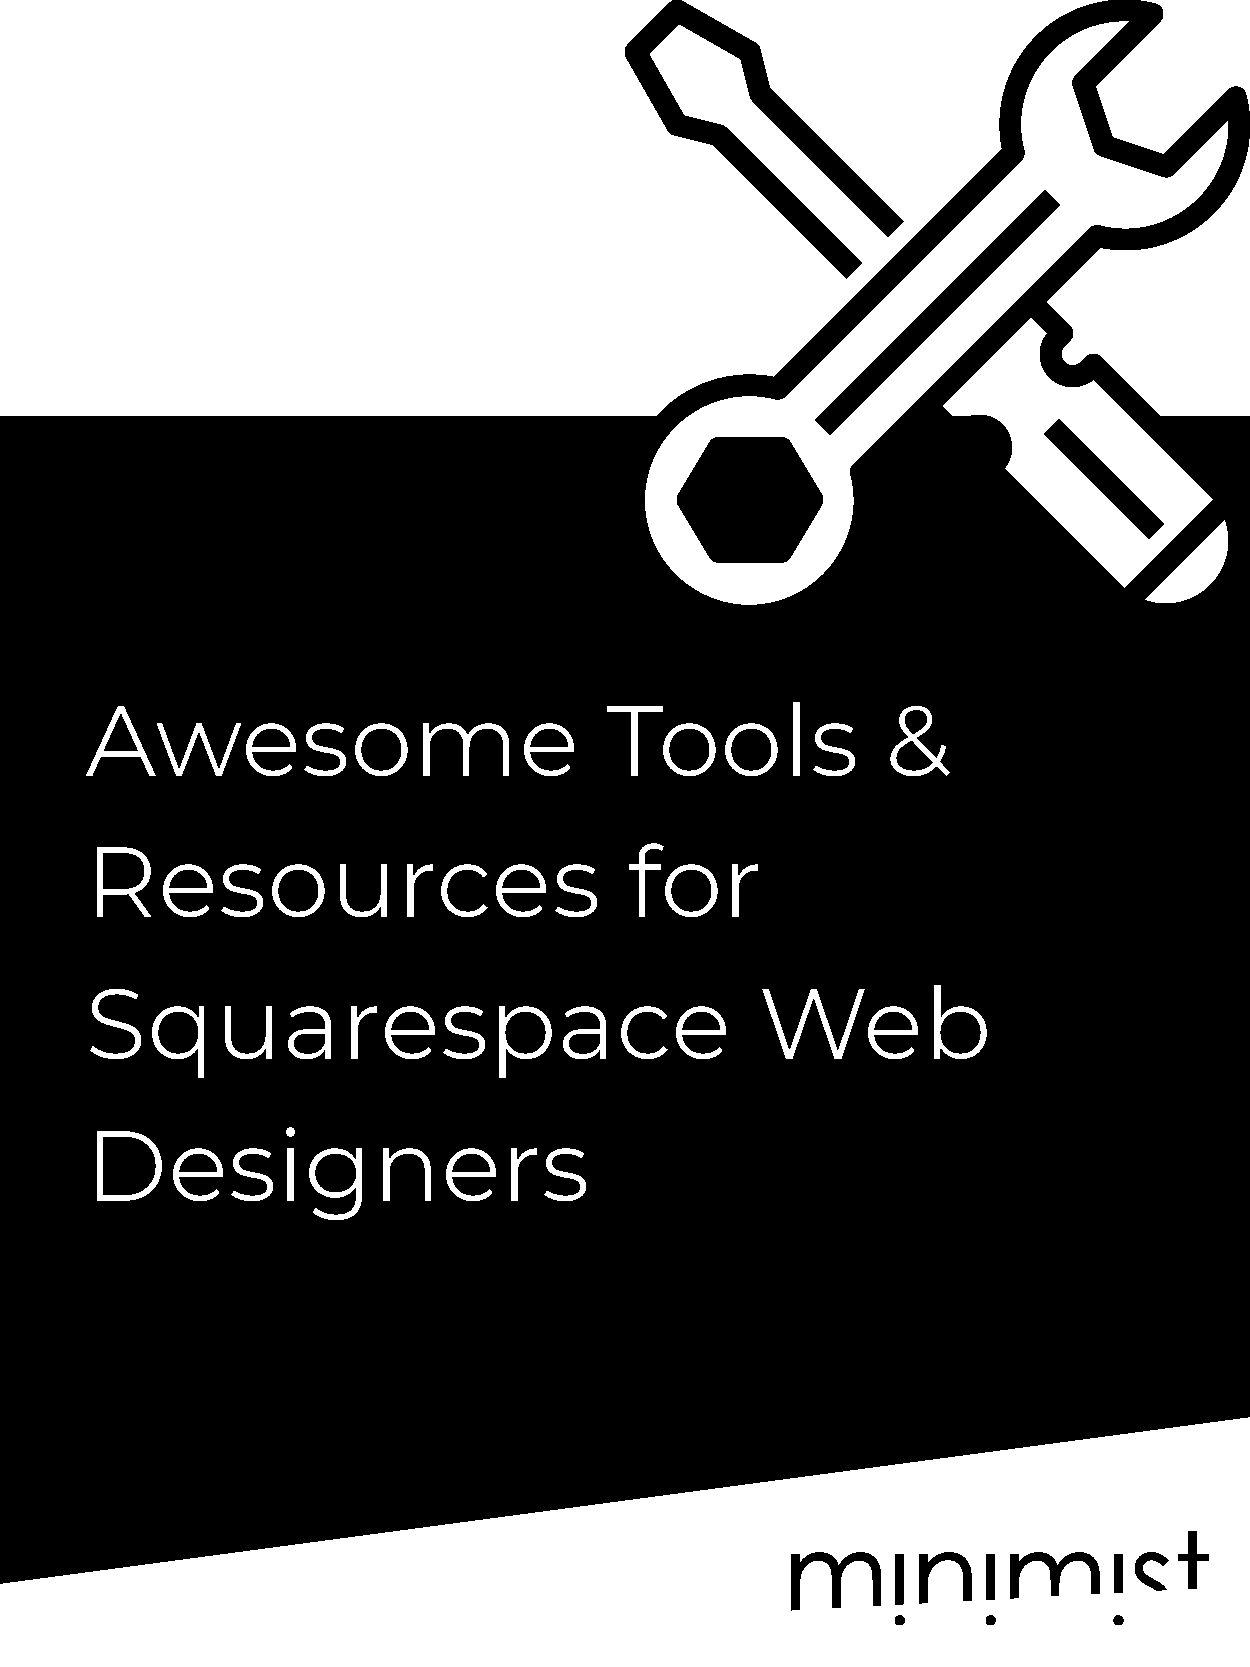 Awesome Tools & Resources for Squarespace Web Designers